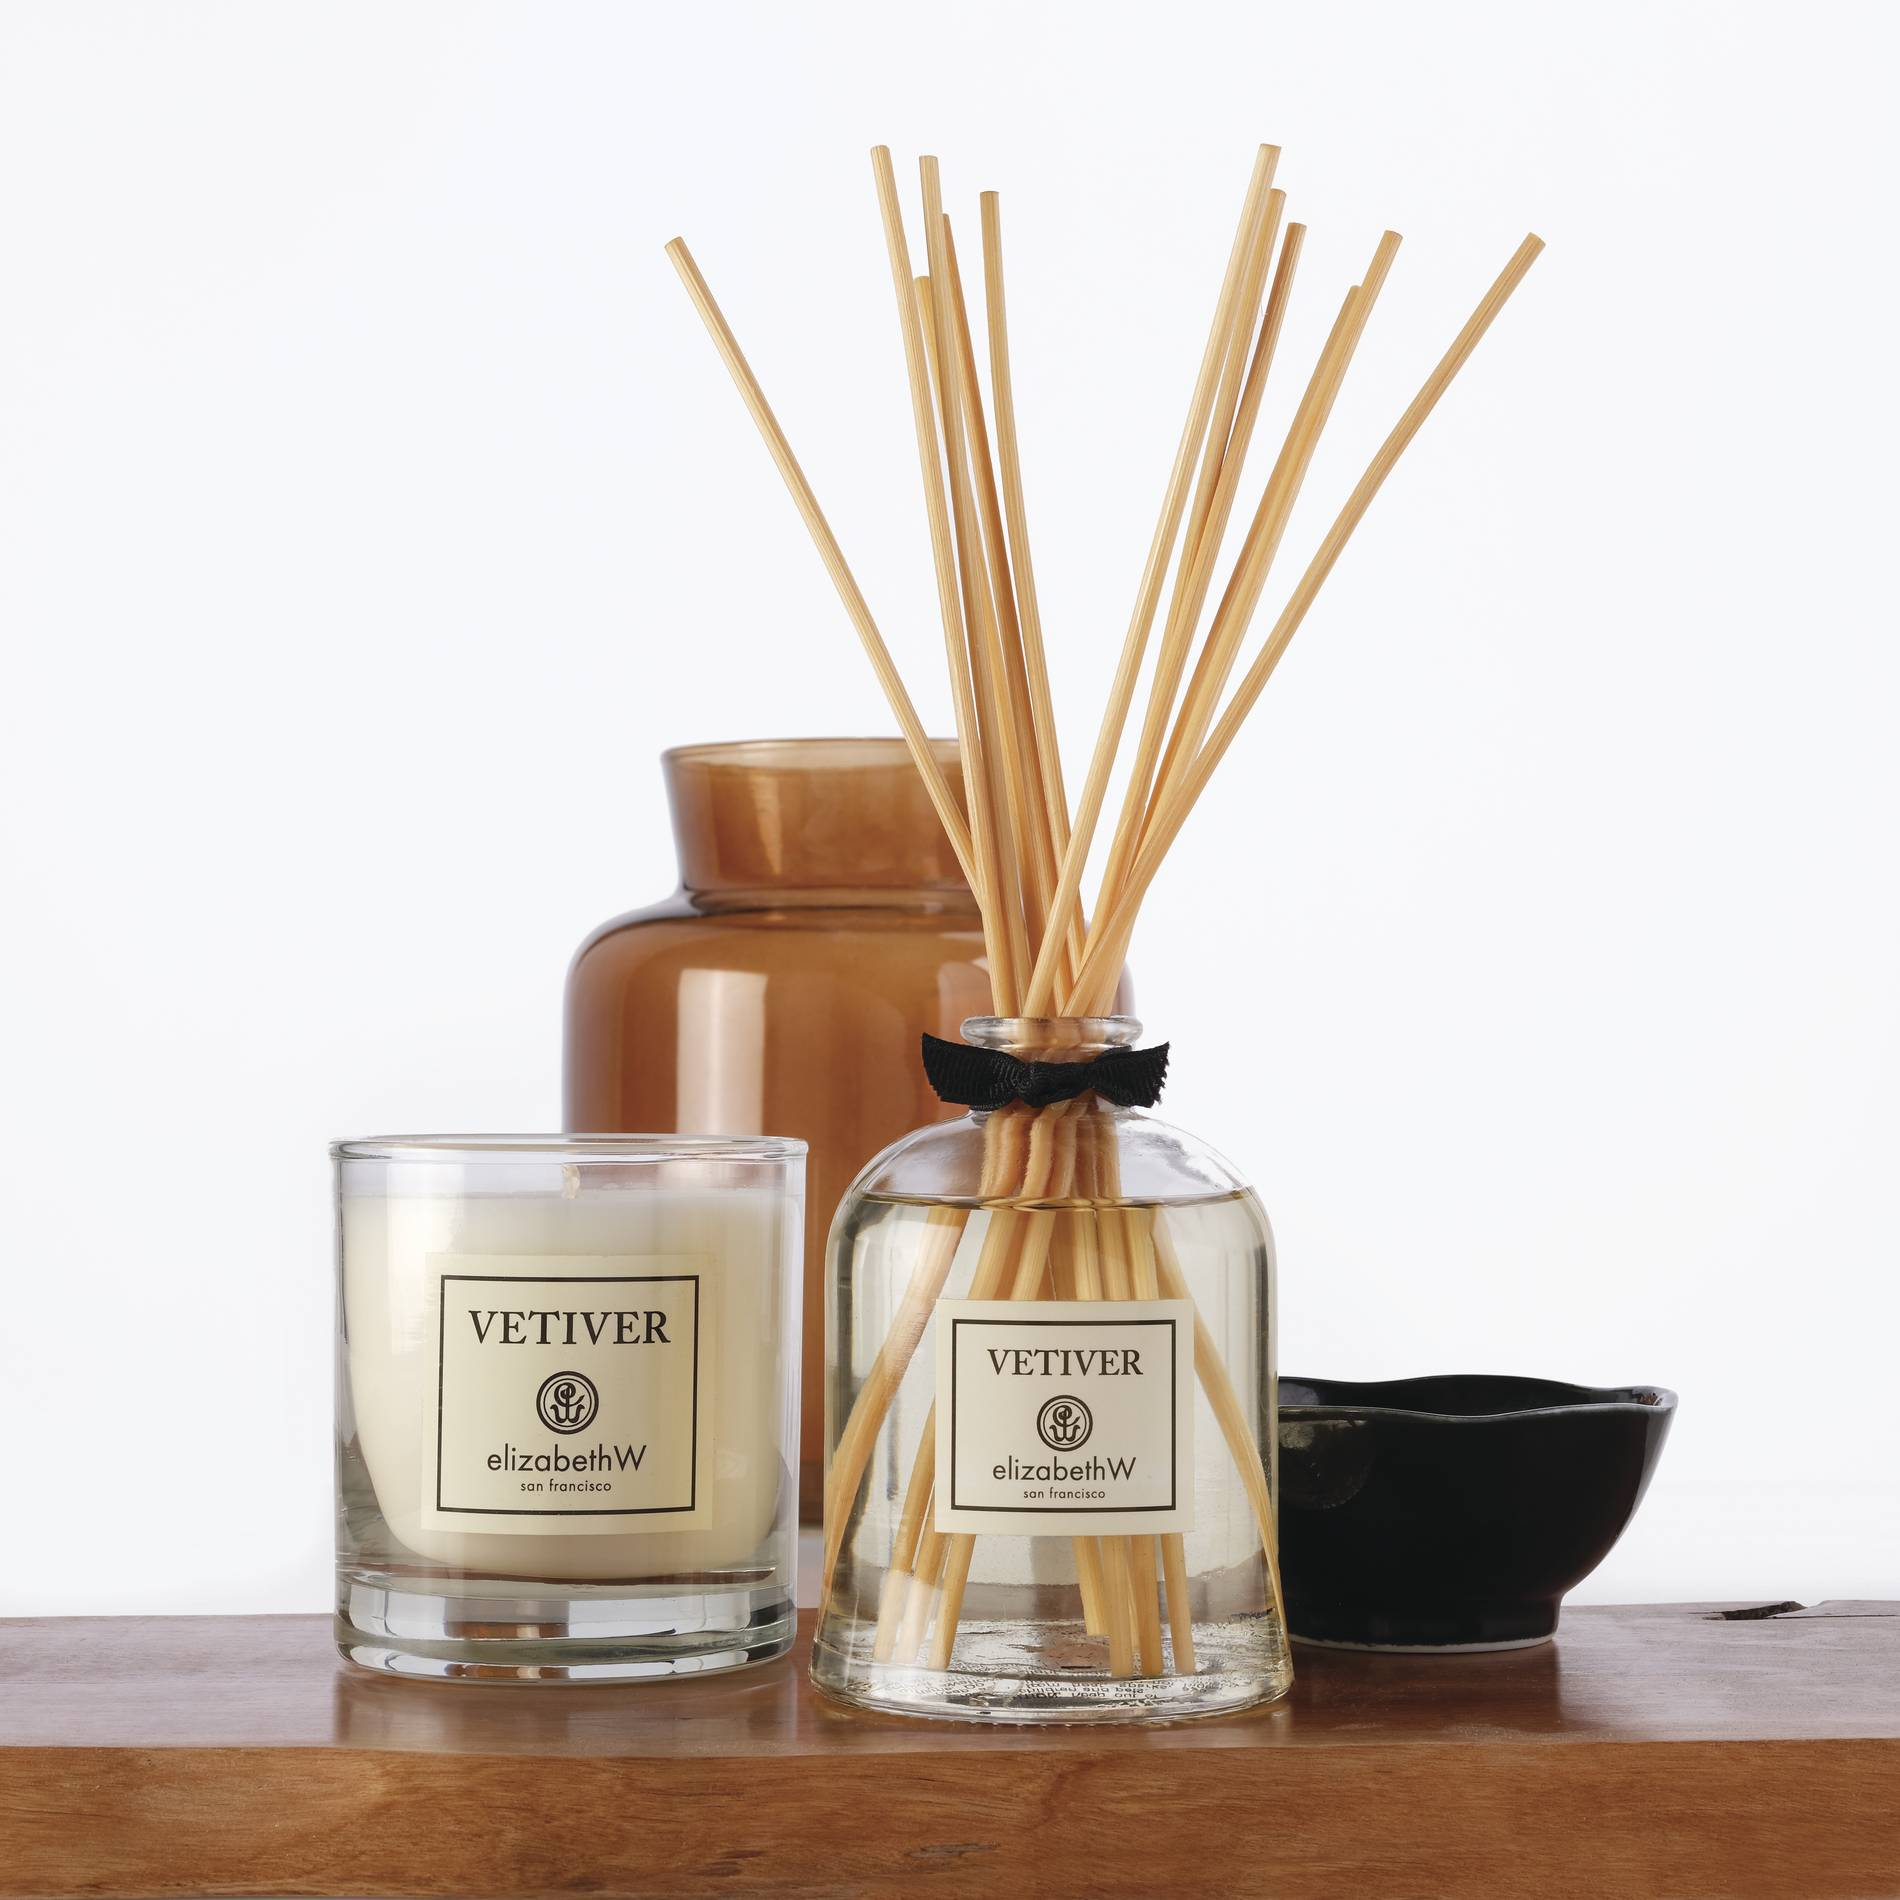 elizabethW vetiver candle and scent diffuser